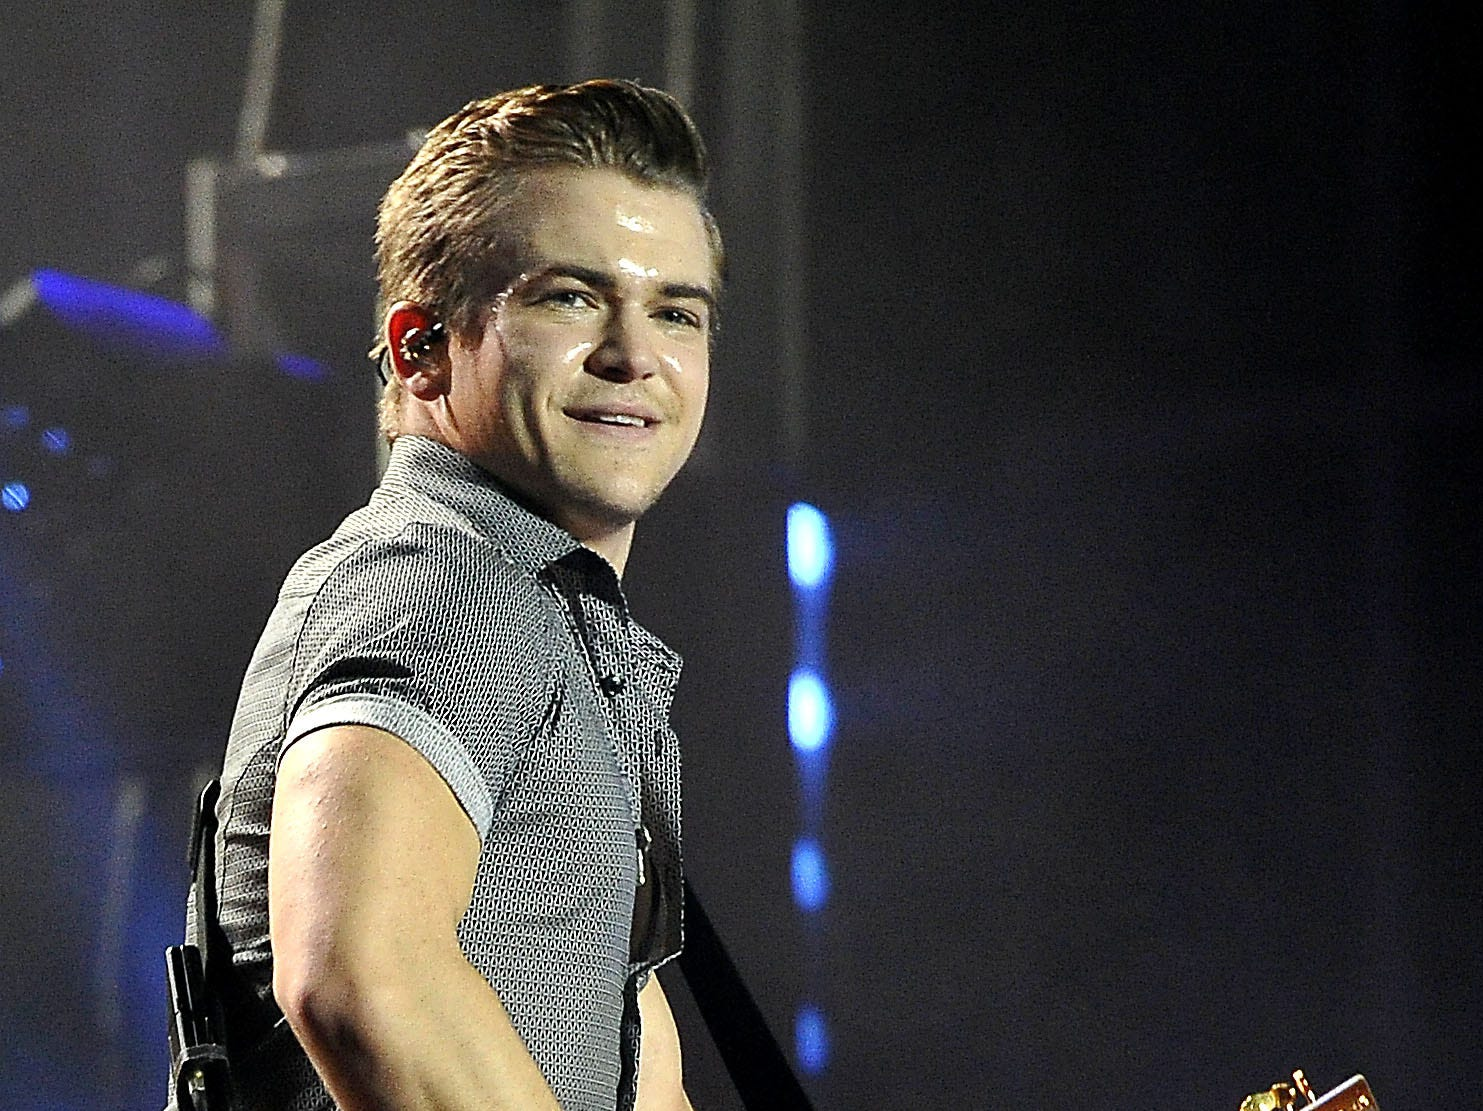 Hunter Hayes is scheduled to play the Chevy Riverfront Stage at CMA Fest 2019.